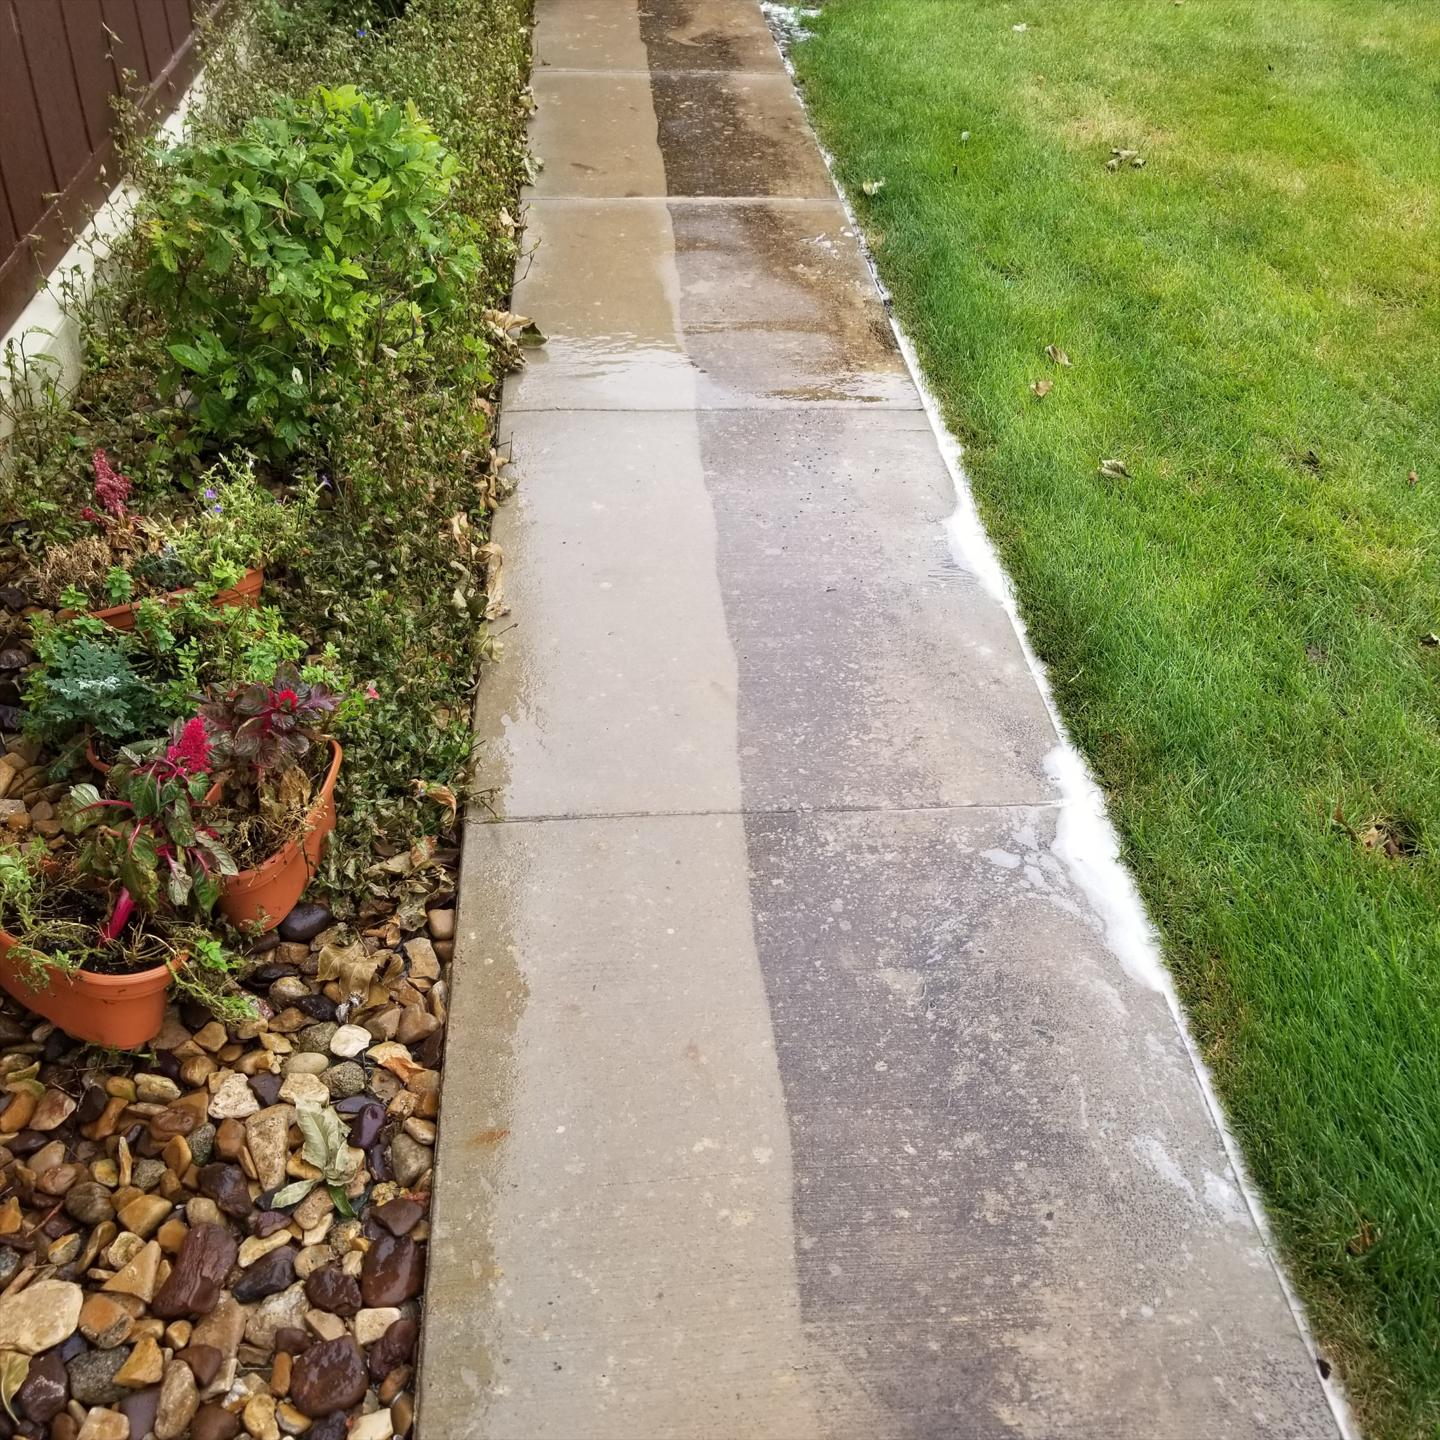 A cement walkway clean and looking like new.